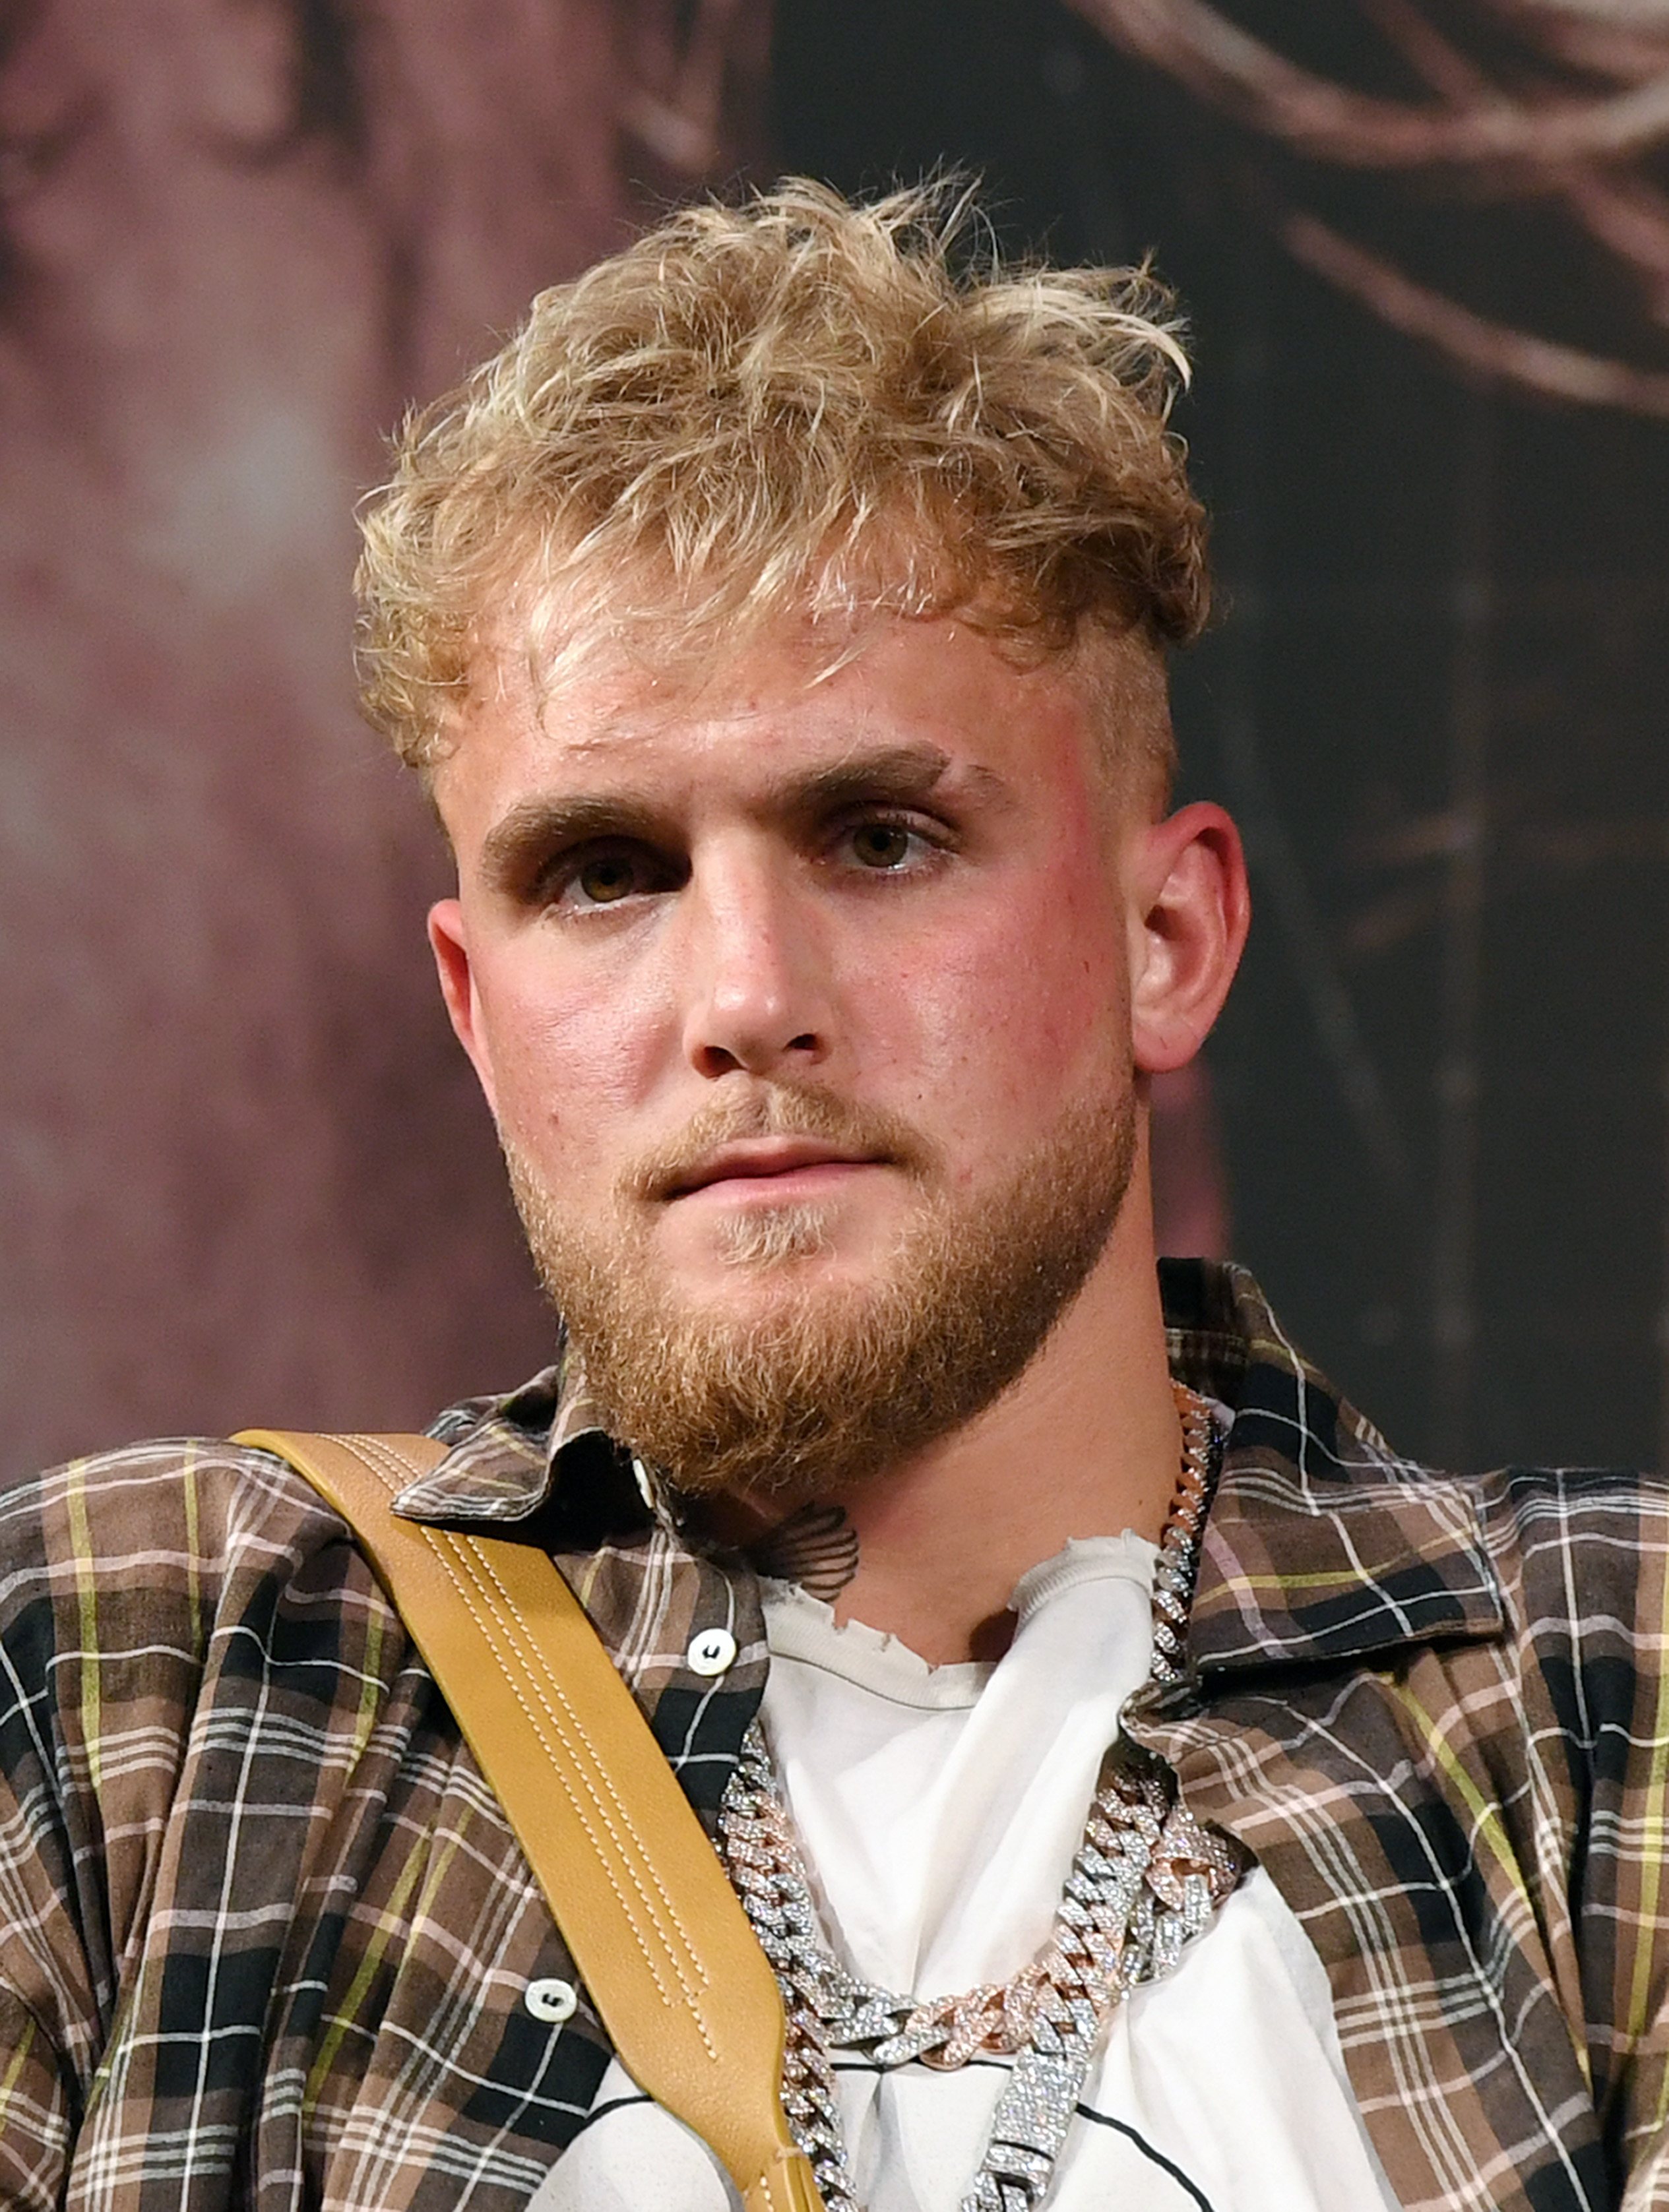 Jake Paul attends a news conference for Triller Fight Club's inaugural 2021 boxing event at The Venetian Las Vegas on March 26, 2021 in Las Vegas, Nevada. Paul will face Ben Askren in the main event that will take place on April 17, 2021, at Mercedes-Benz Stadium in Atlanta.